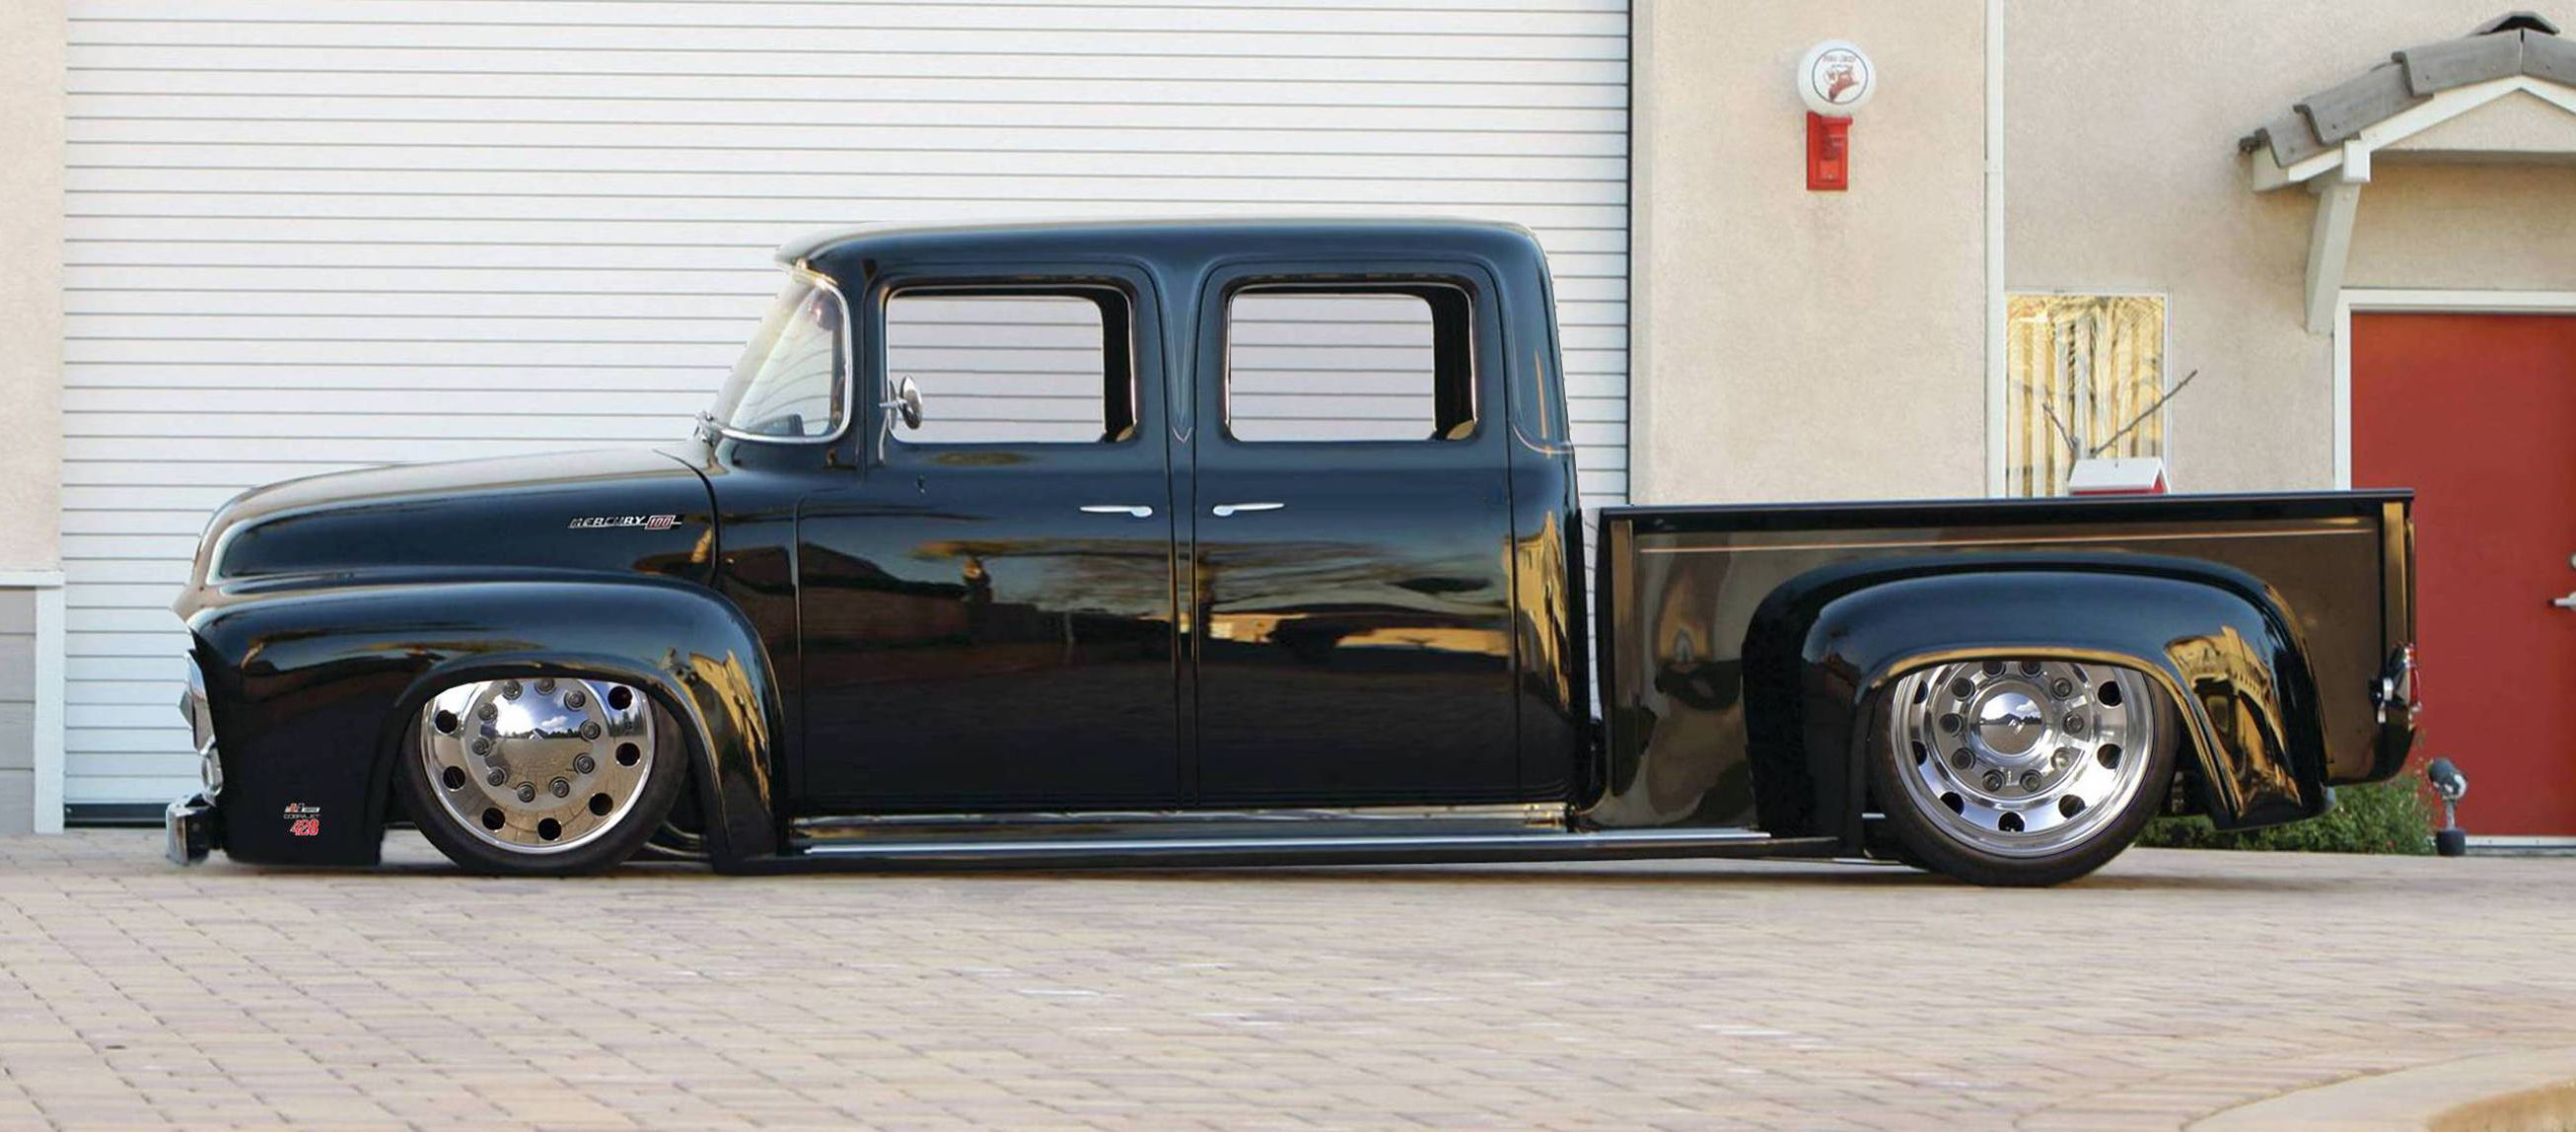 F350 Towing Capacity >> 1956 F100 Crew Cab | Autos Post